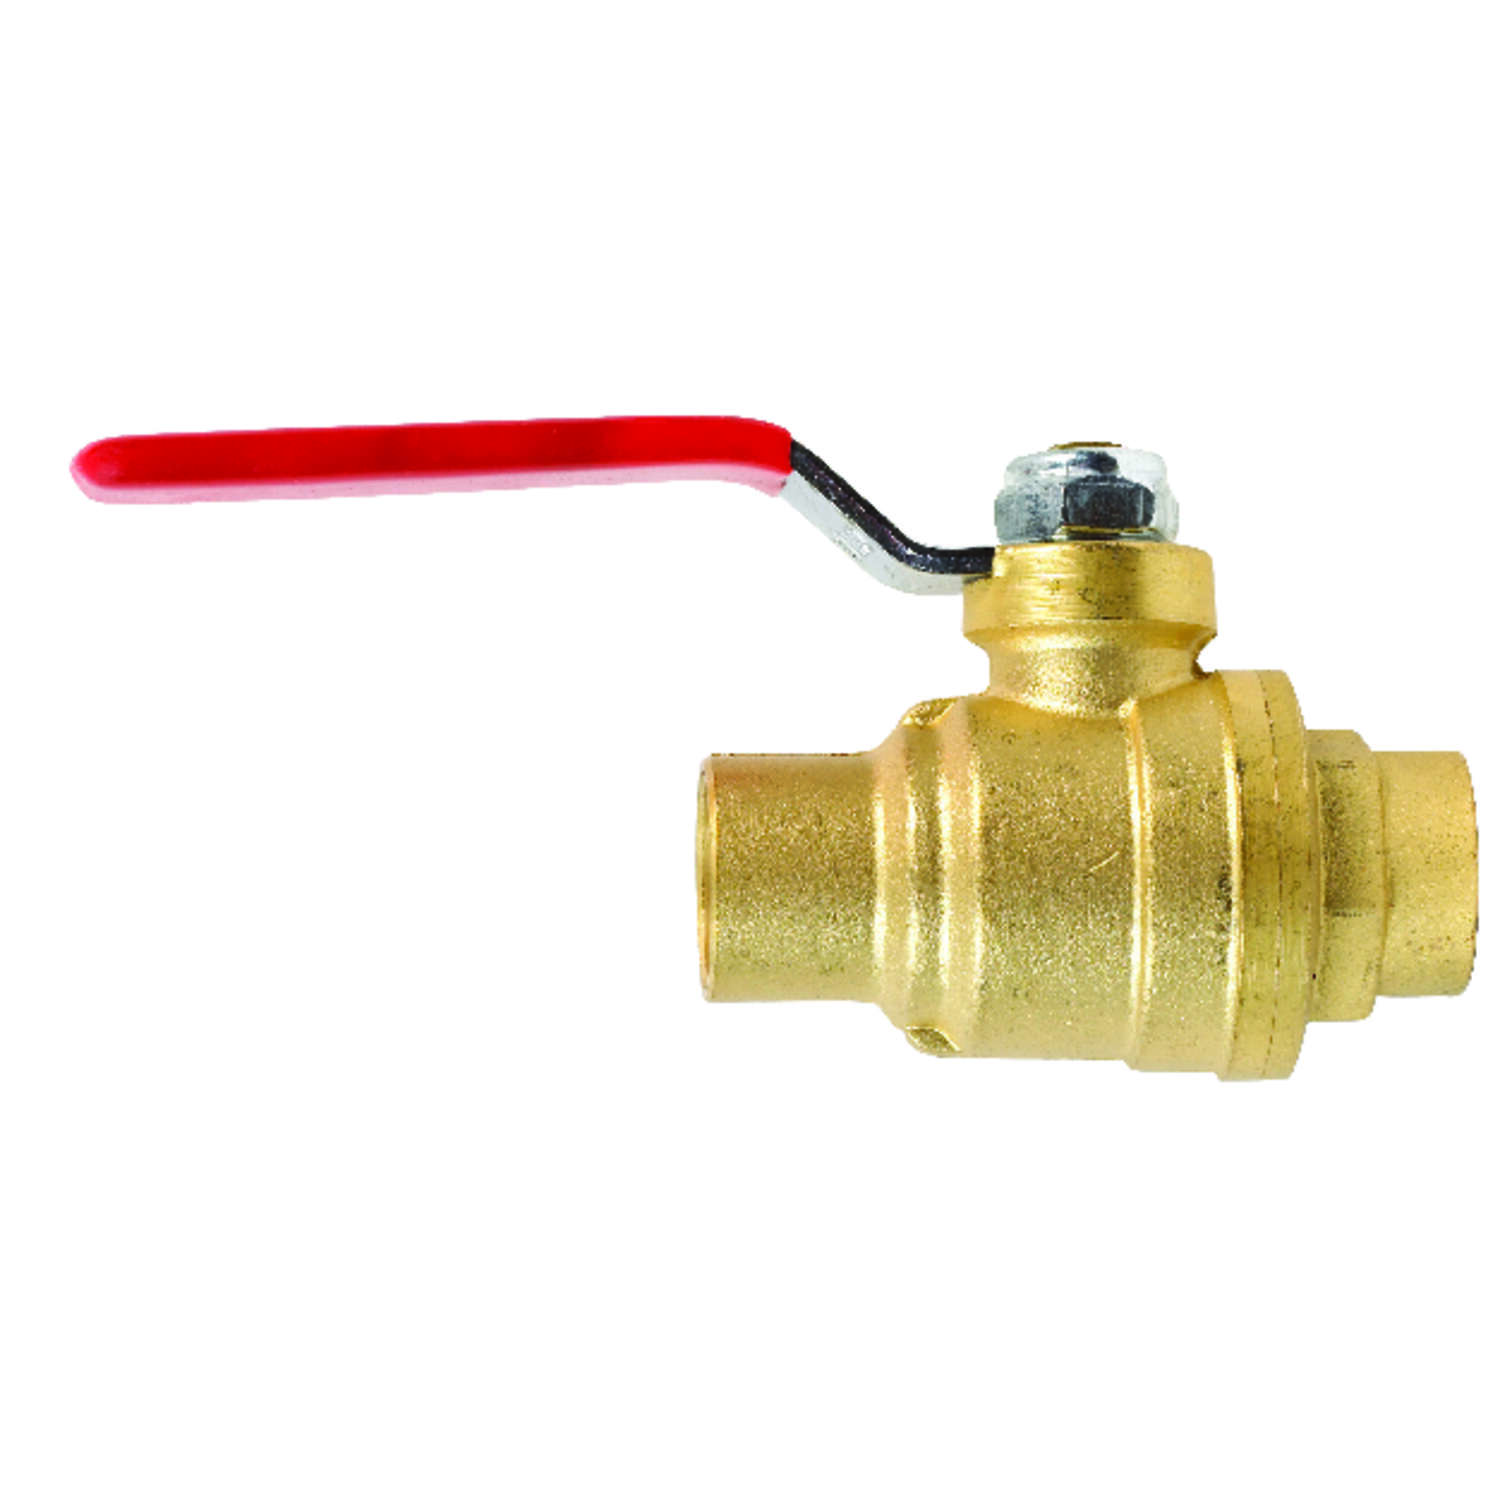 B&K  ProLine  1/2 in. Brass  Sweat  Ball Valve  Full Port